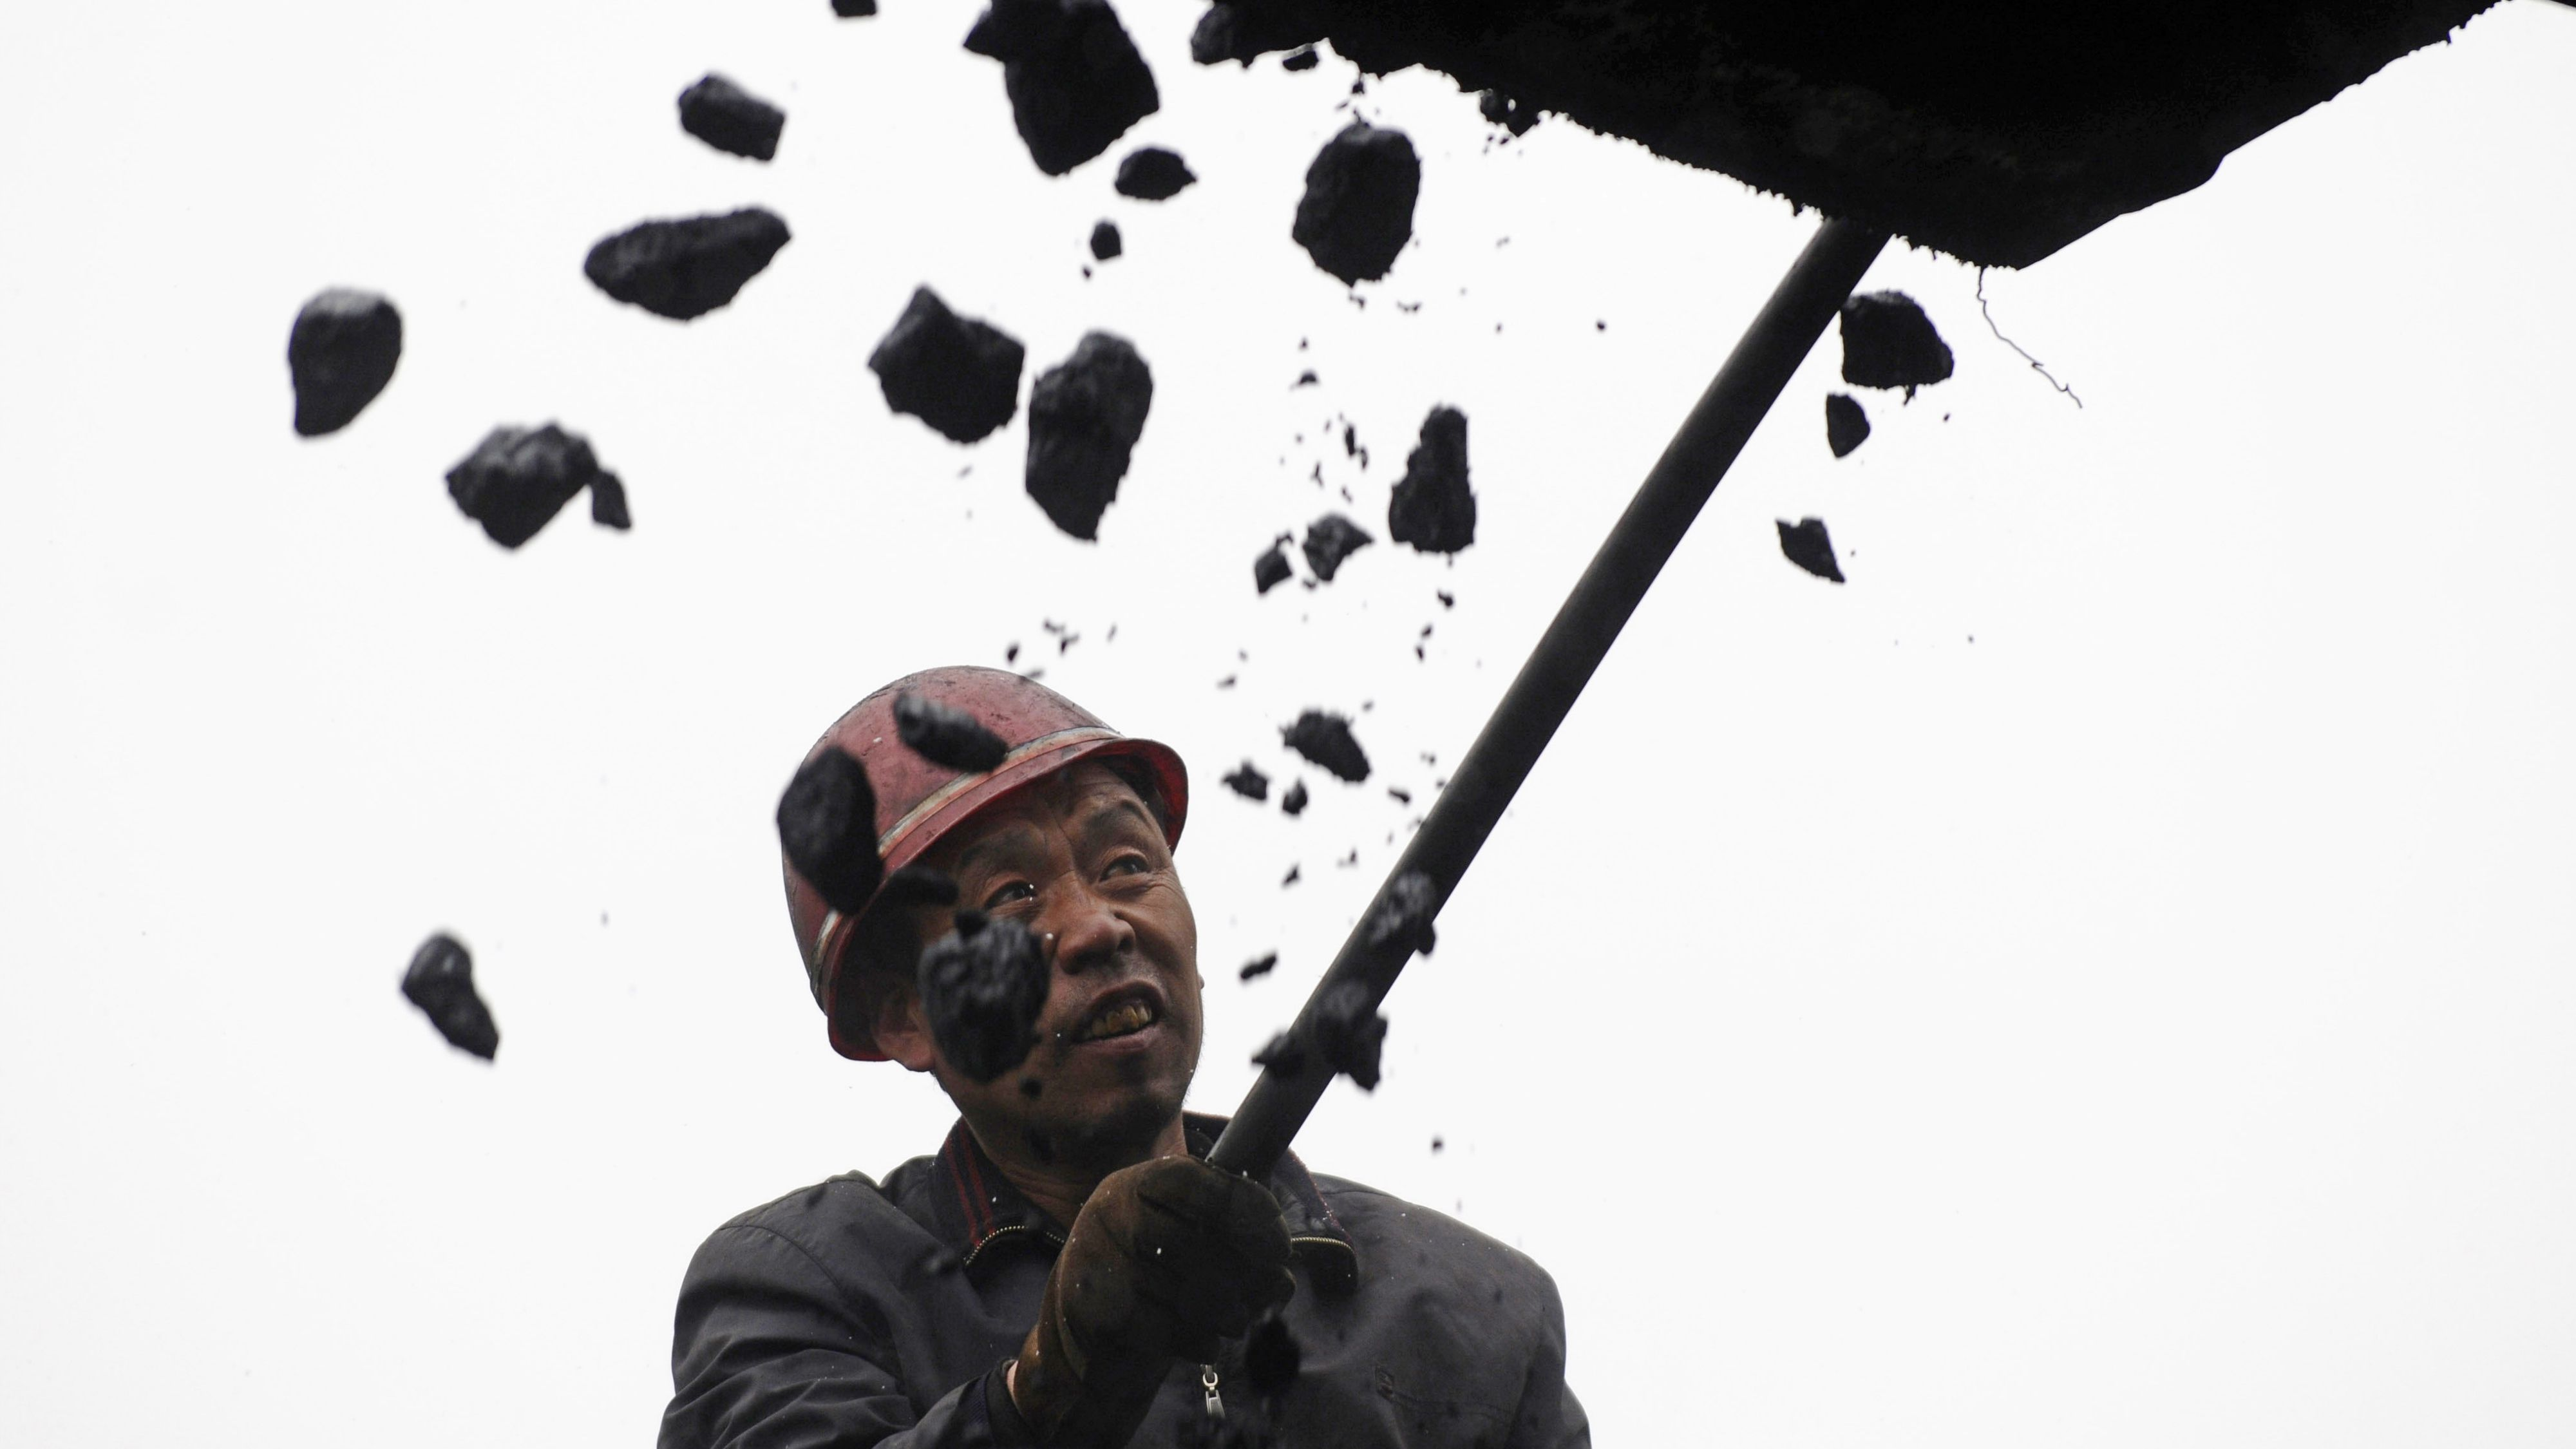 china rebalancing stimulus A miner works at a coal mine in Changzhi, Shanxi province February 26, 2009. China's energy use in generating each dollar of gross domestic product fell 4.5 percent in 2008, Liu Qi, deputy administrator of the National Energy Administration said on Thursday. REUTERS/Stringer